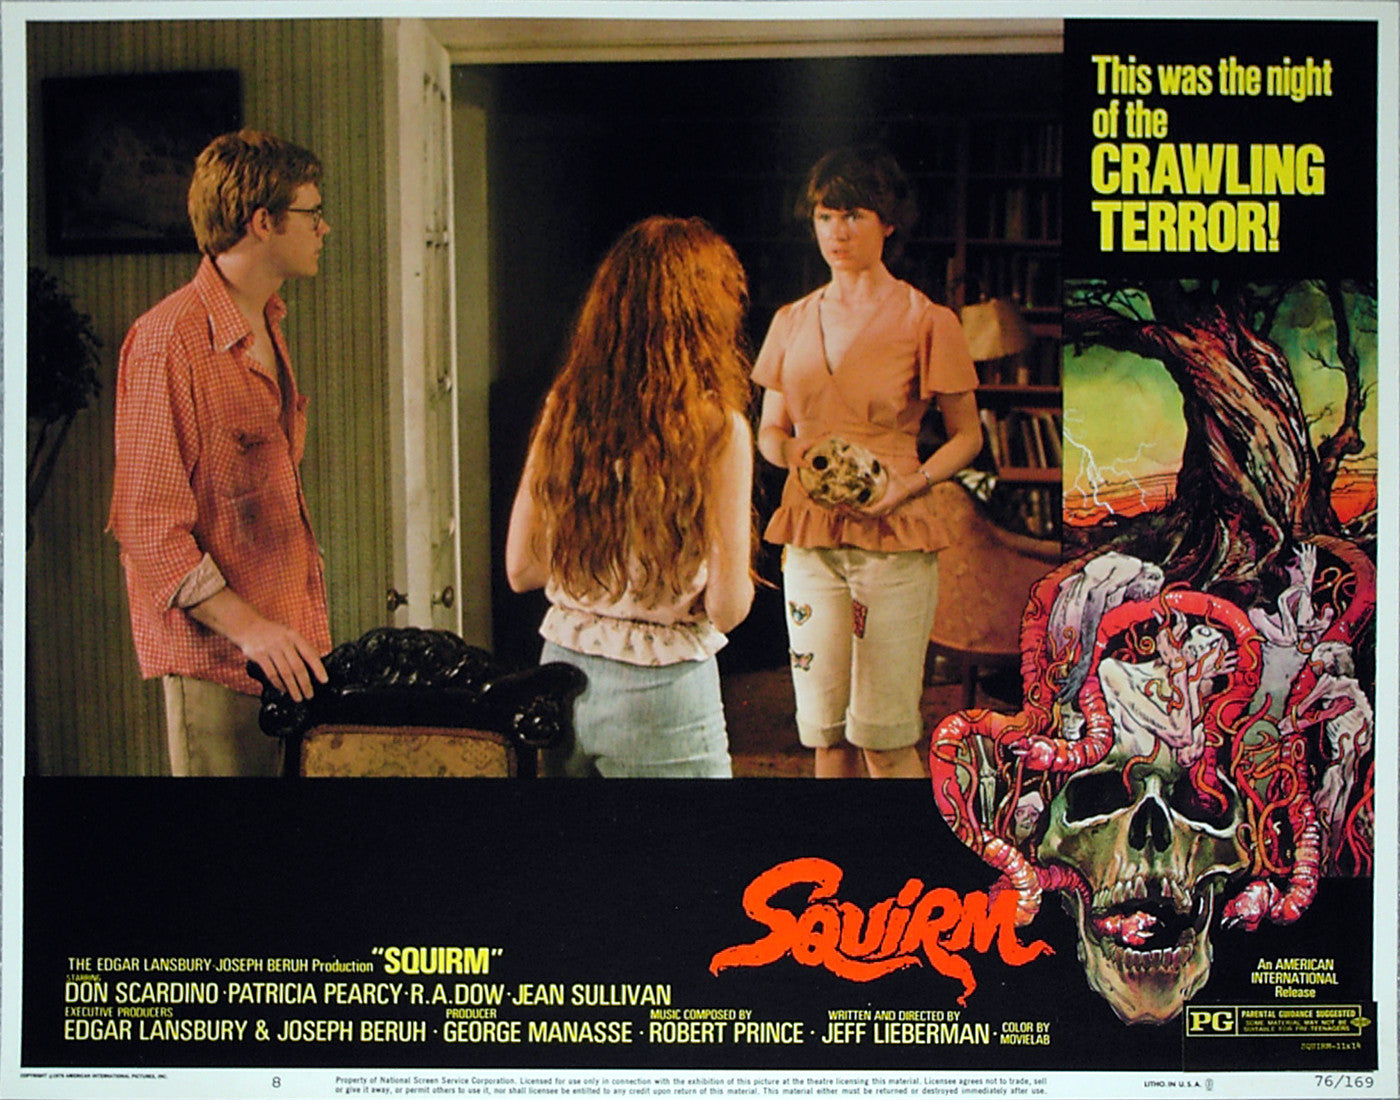 SQUIRM - US lobby card v8